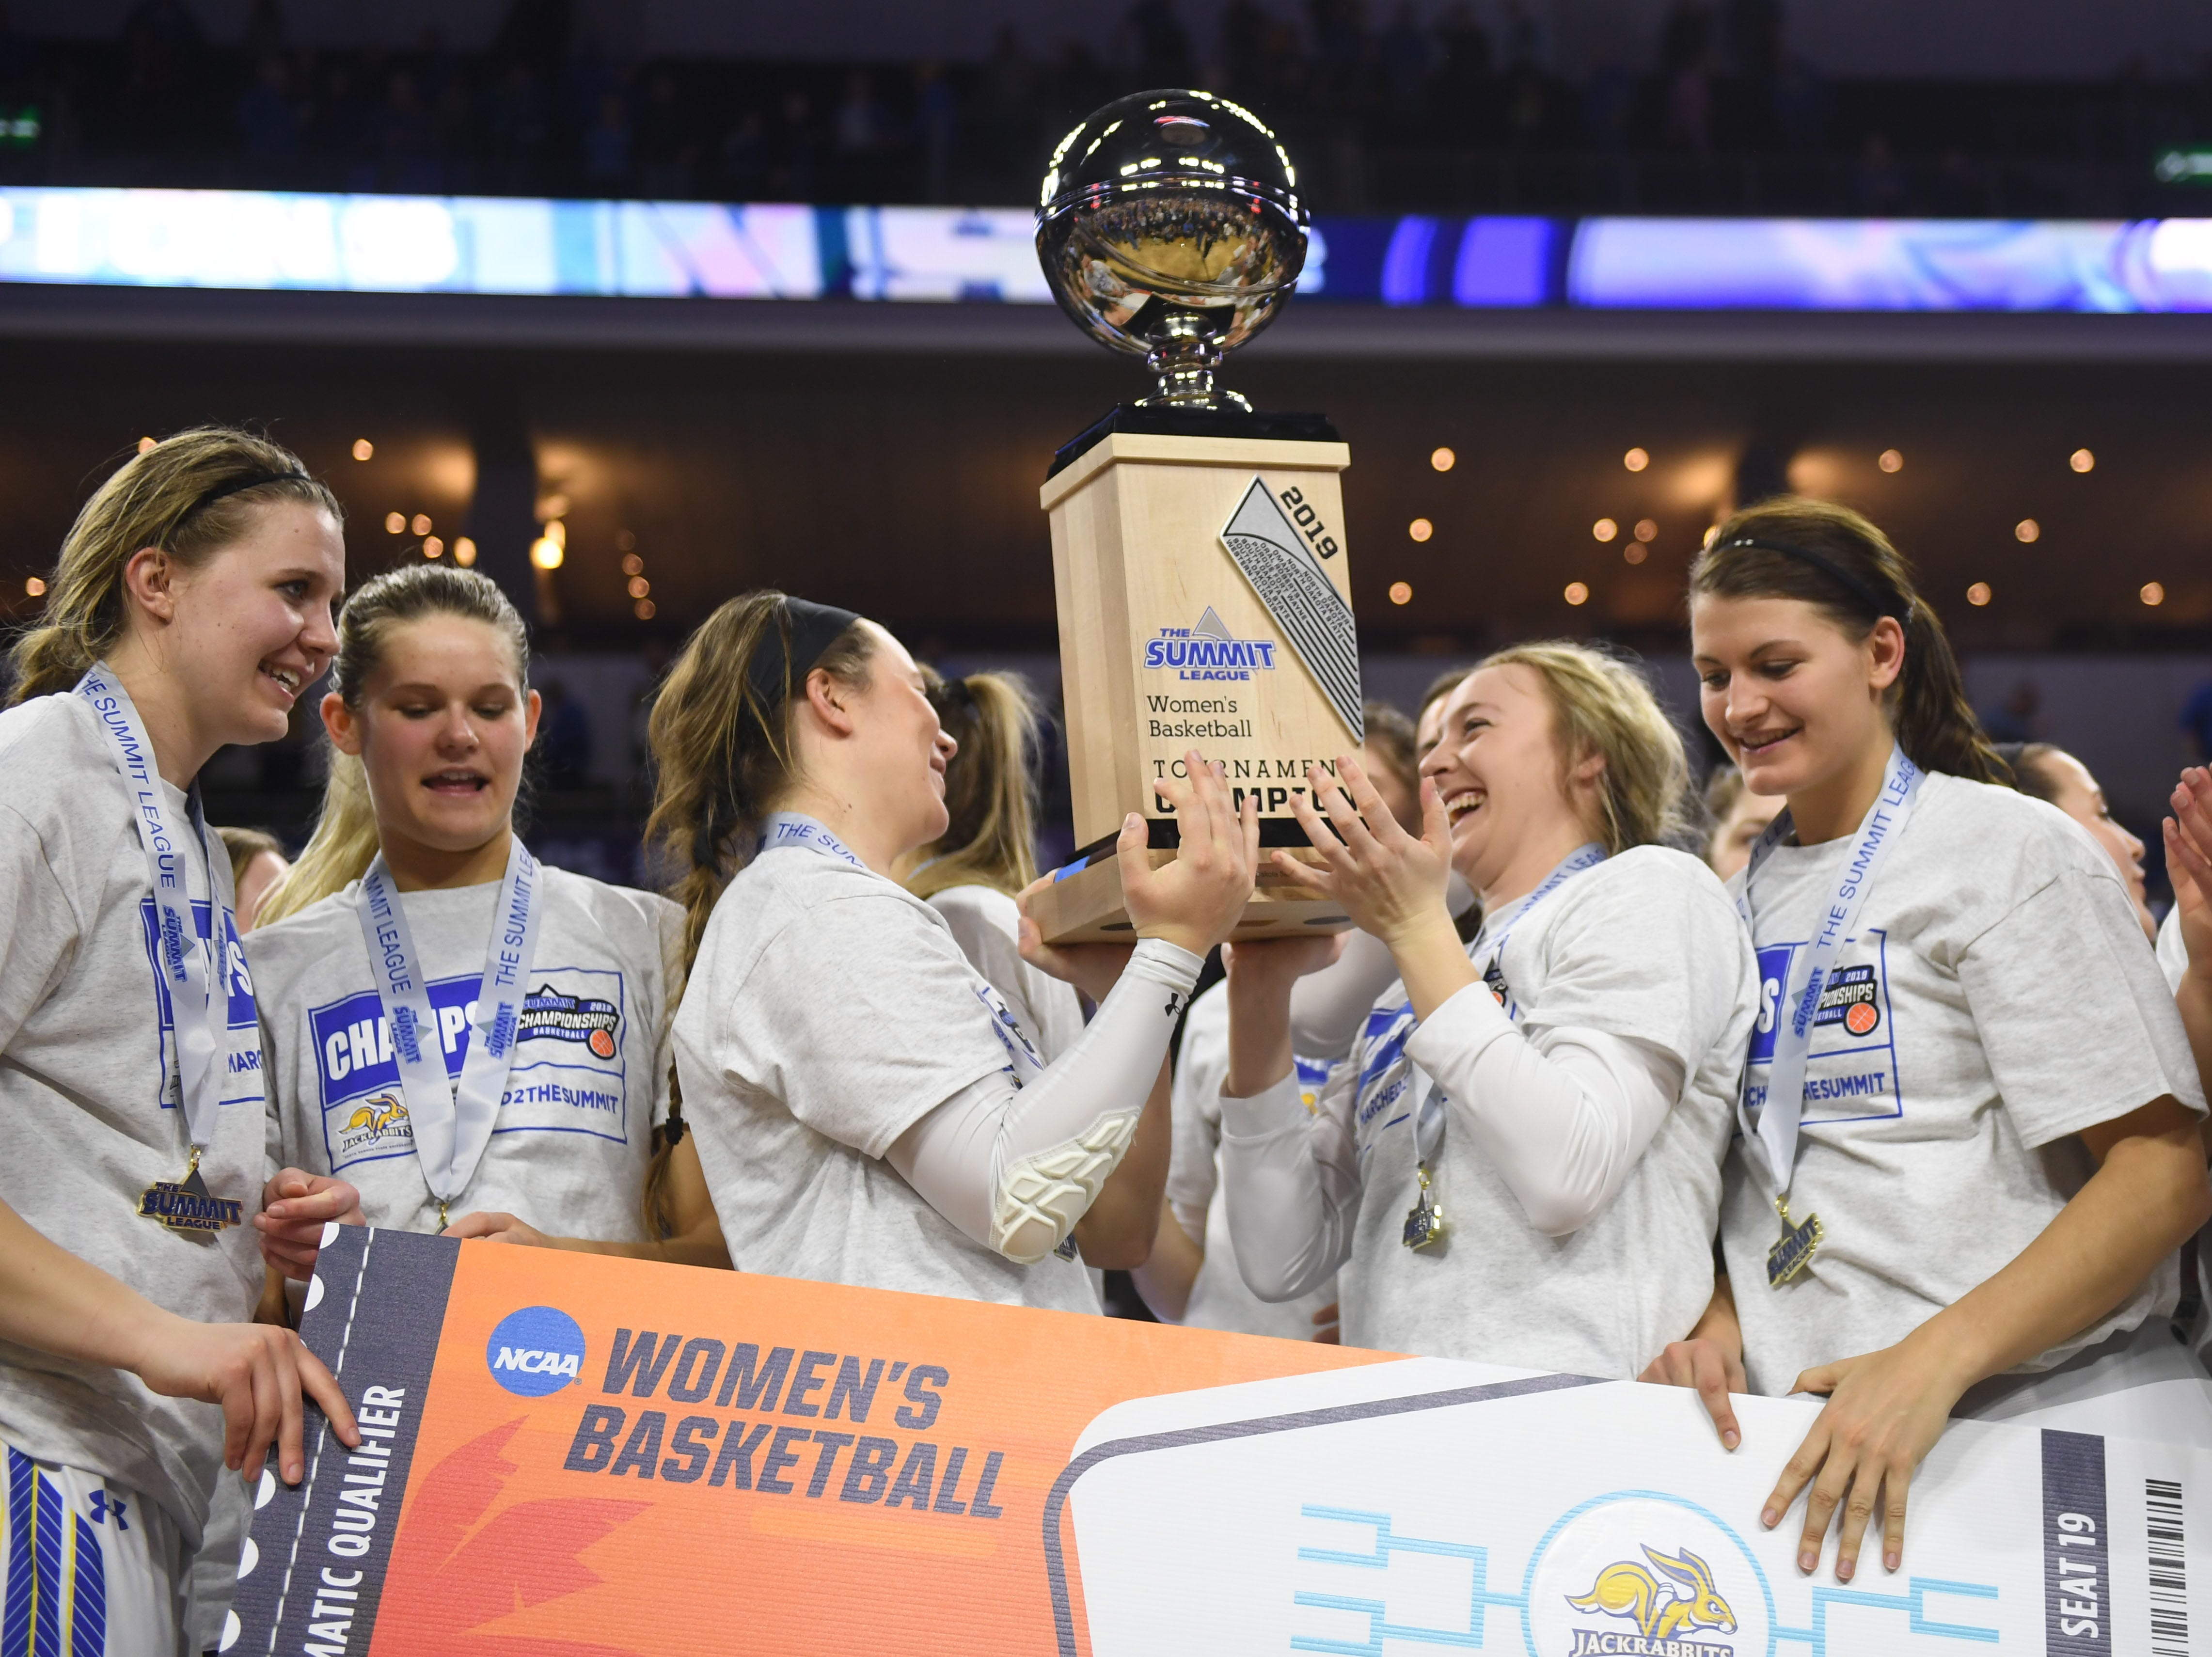 SDSU won 83-71 against USD Tuesday, March 12, in the Summit League women's championship at the Denny Sanford Premier Center in Sioux Falls.